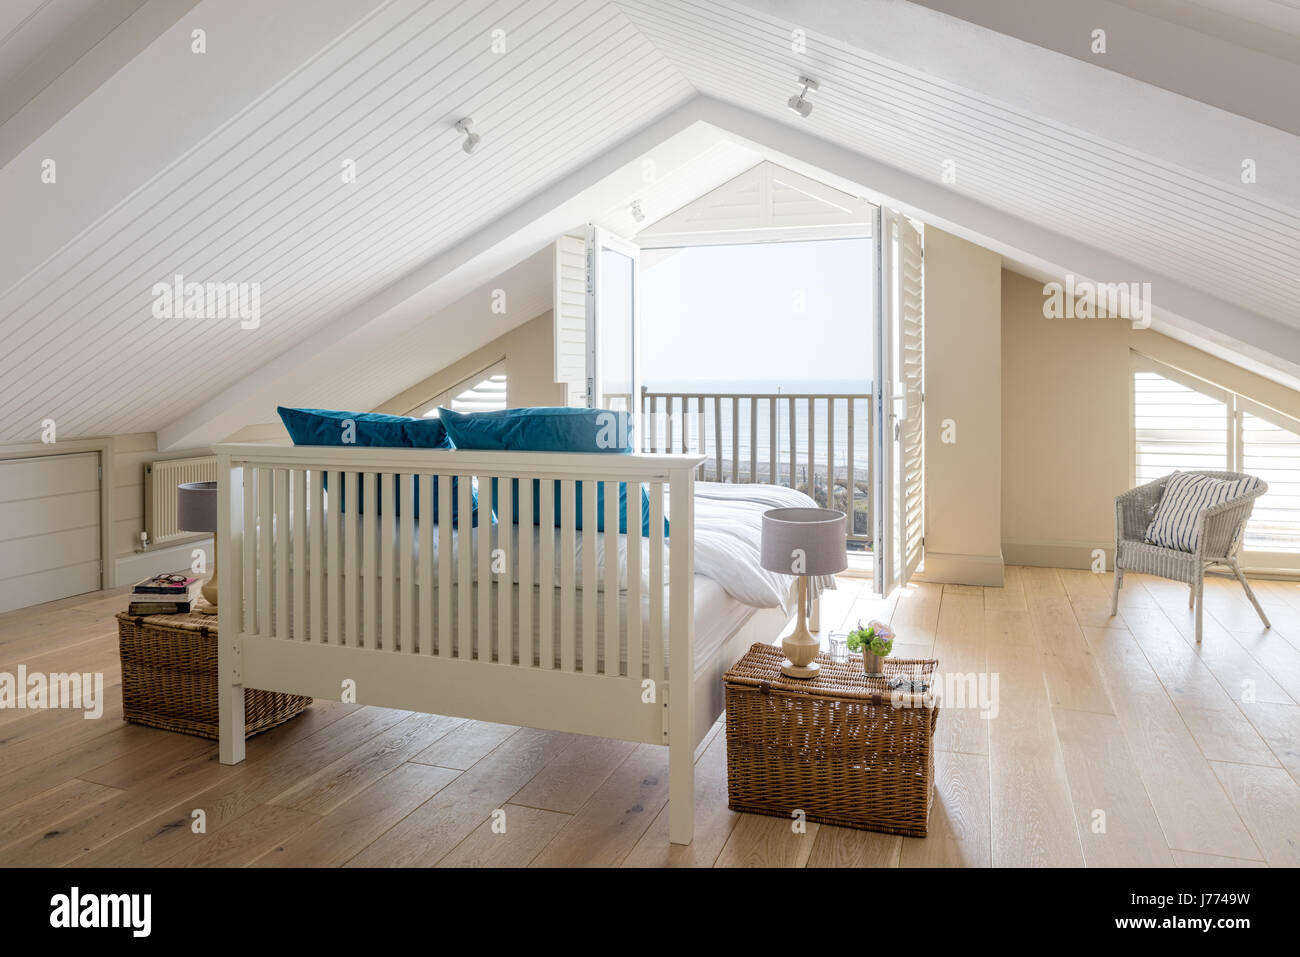 Feather Black Bed In Top Floor Master Bedroom With Pitched Ceiling Stock Photo Alamy